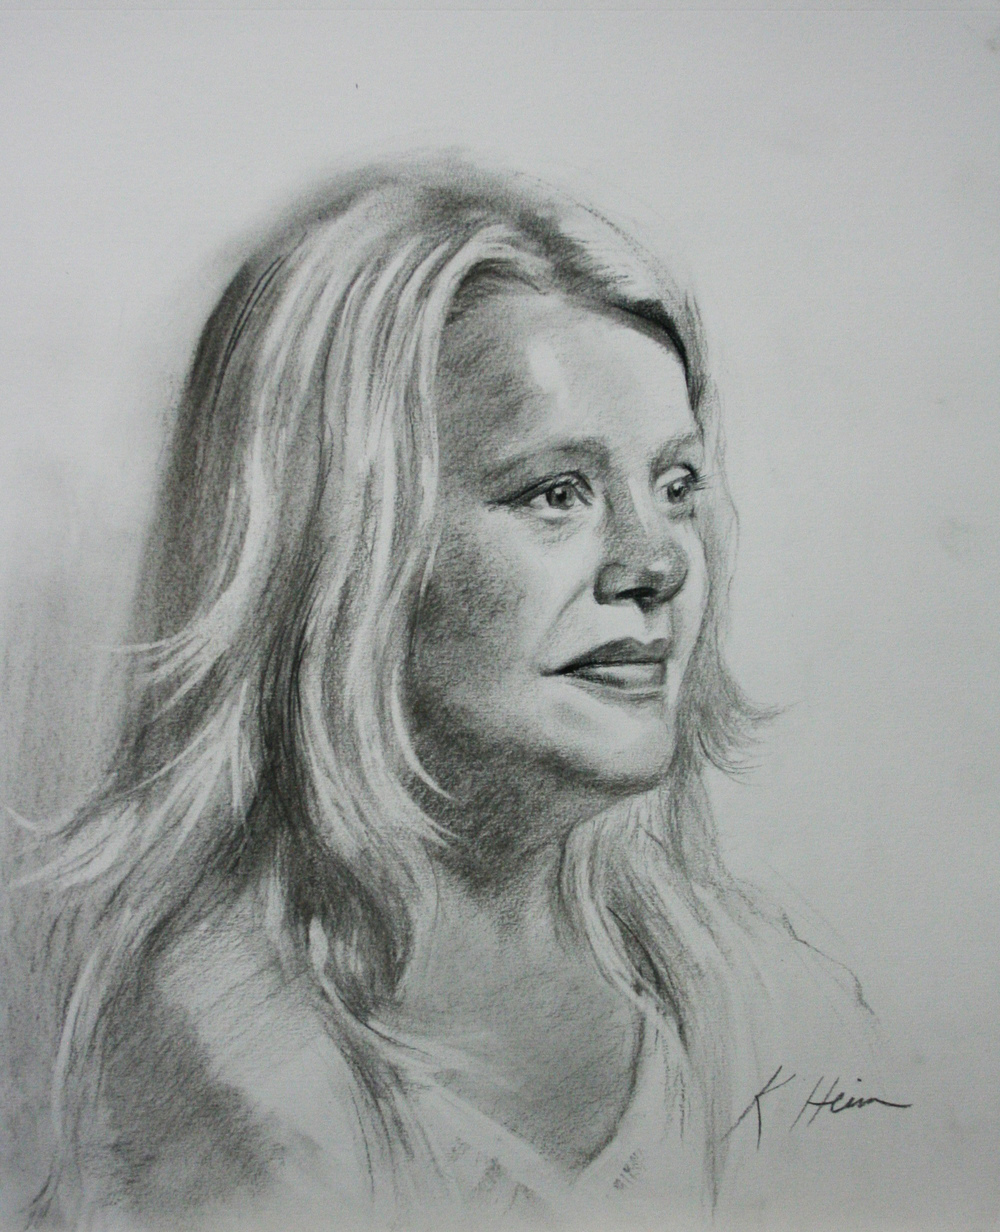 Christine Ripley did this 3-hour drawing.